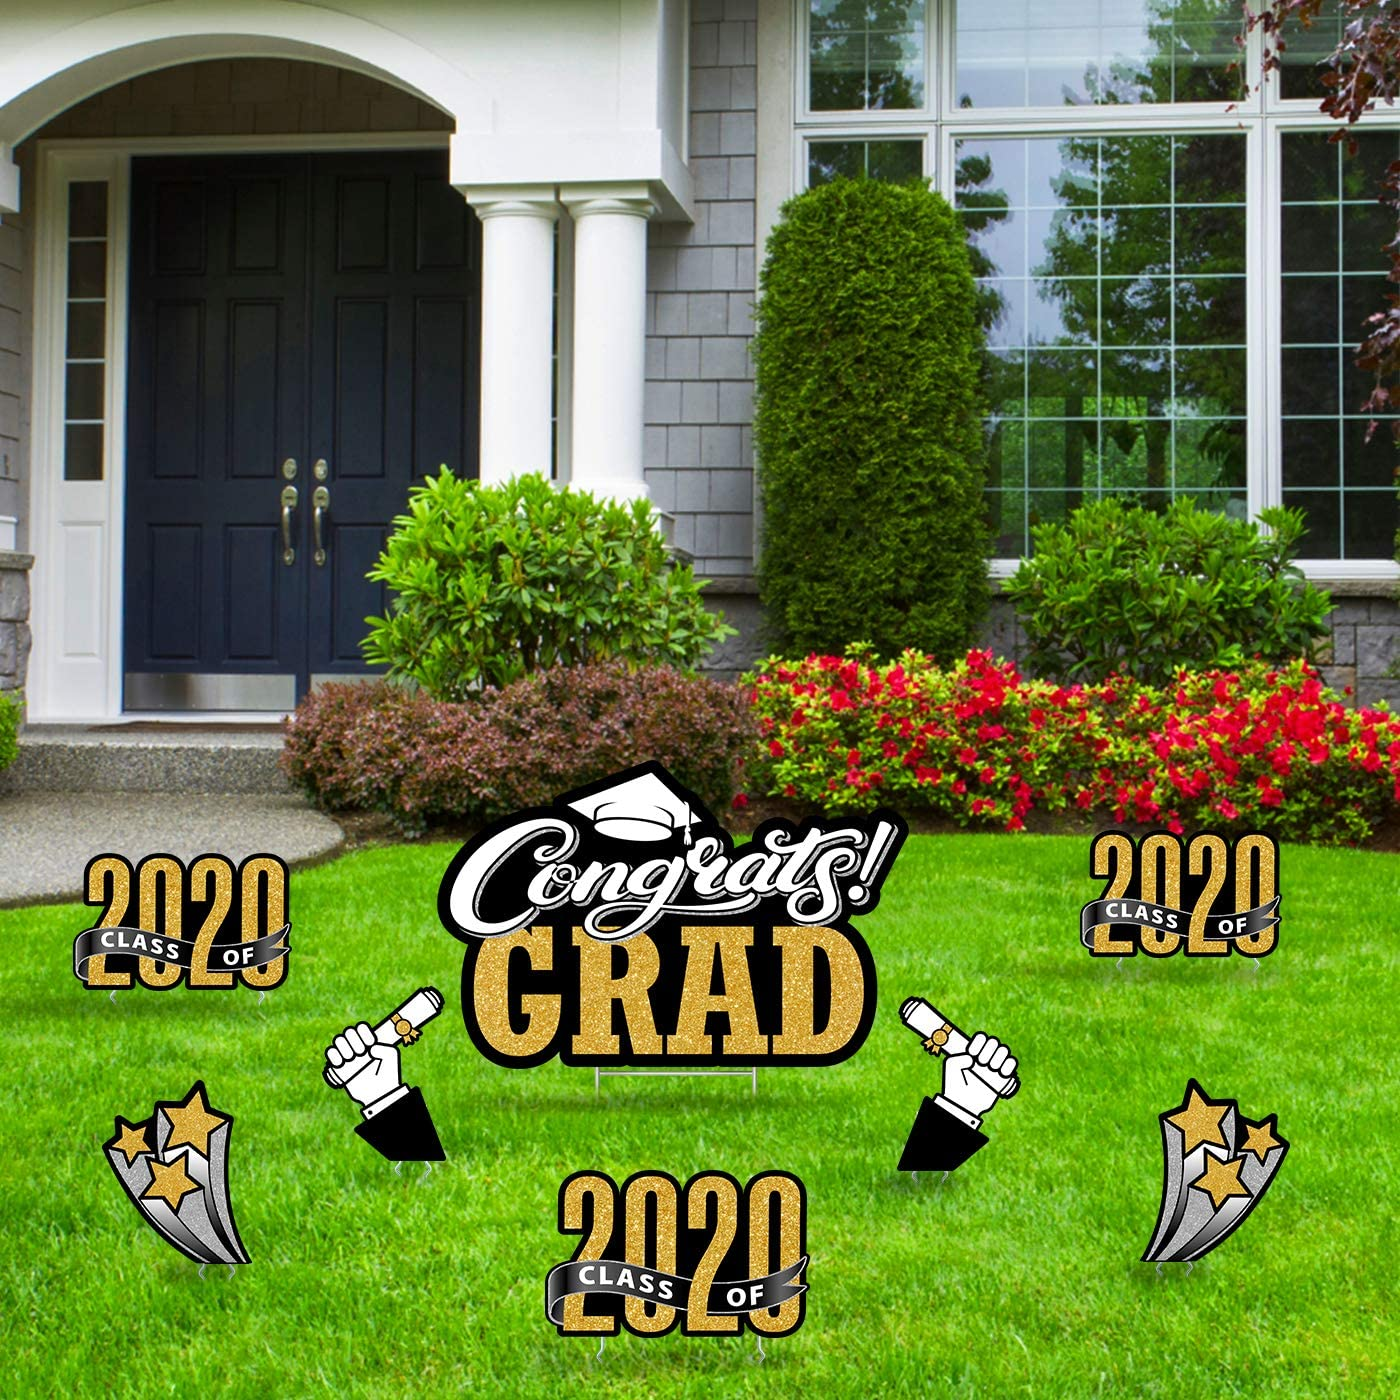 Amazon Com Bigtime Signs Graduation Yard Signs 8 Pc Corrugated Plastic Party Outdoor Decorations Congrats Grad Greetings Class Of 2020 Stars Diploma Hand Waterproof Lawn Decor With Metal Stakes Garden Outdoor